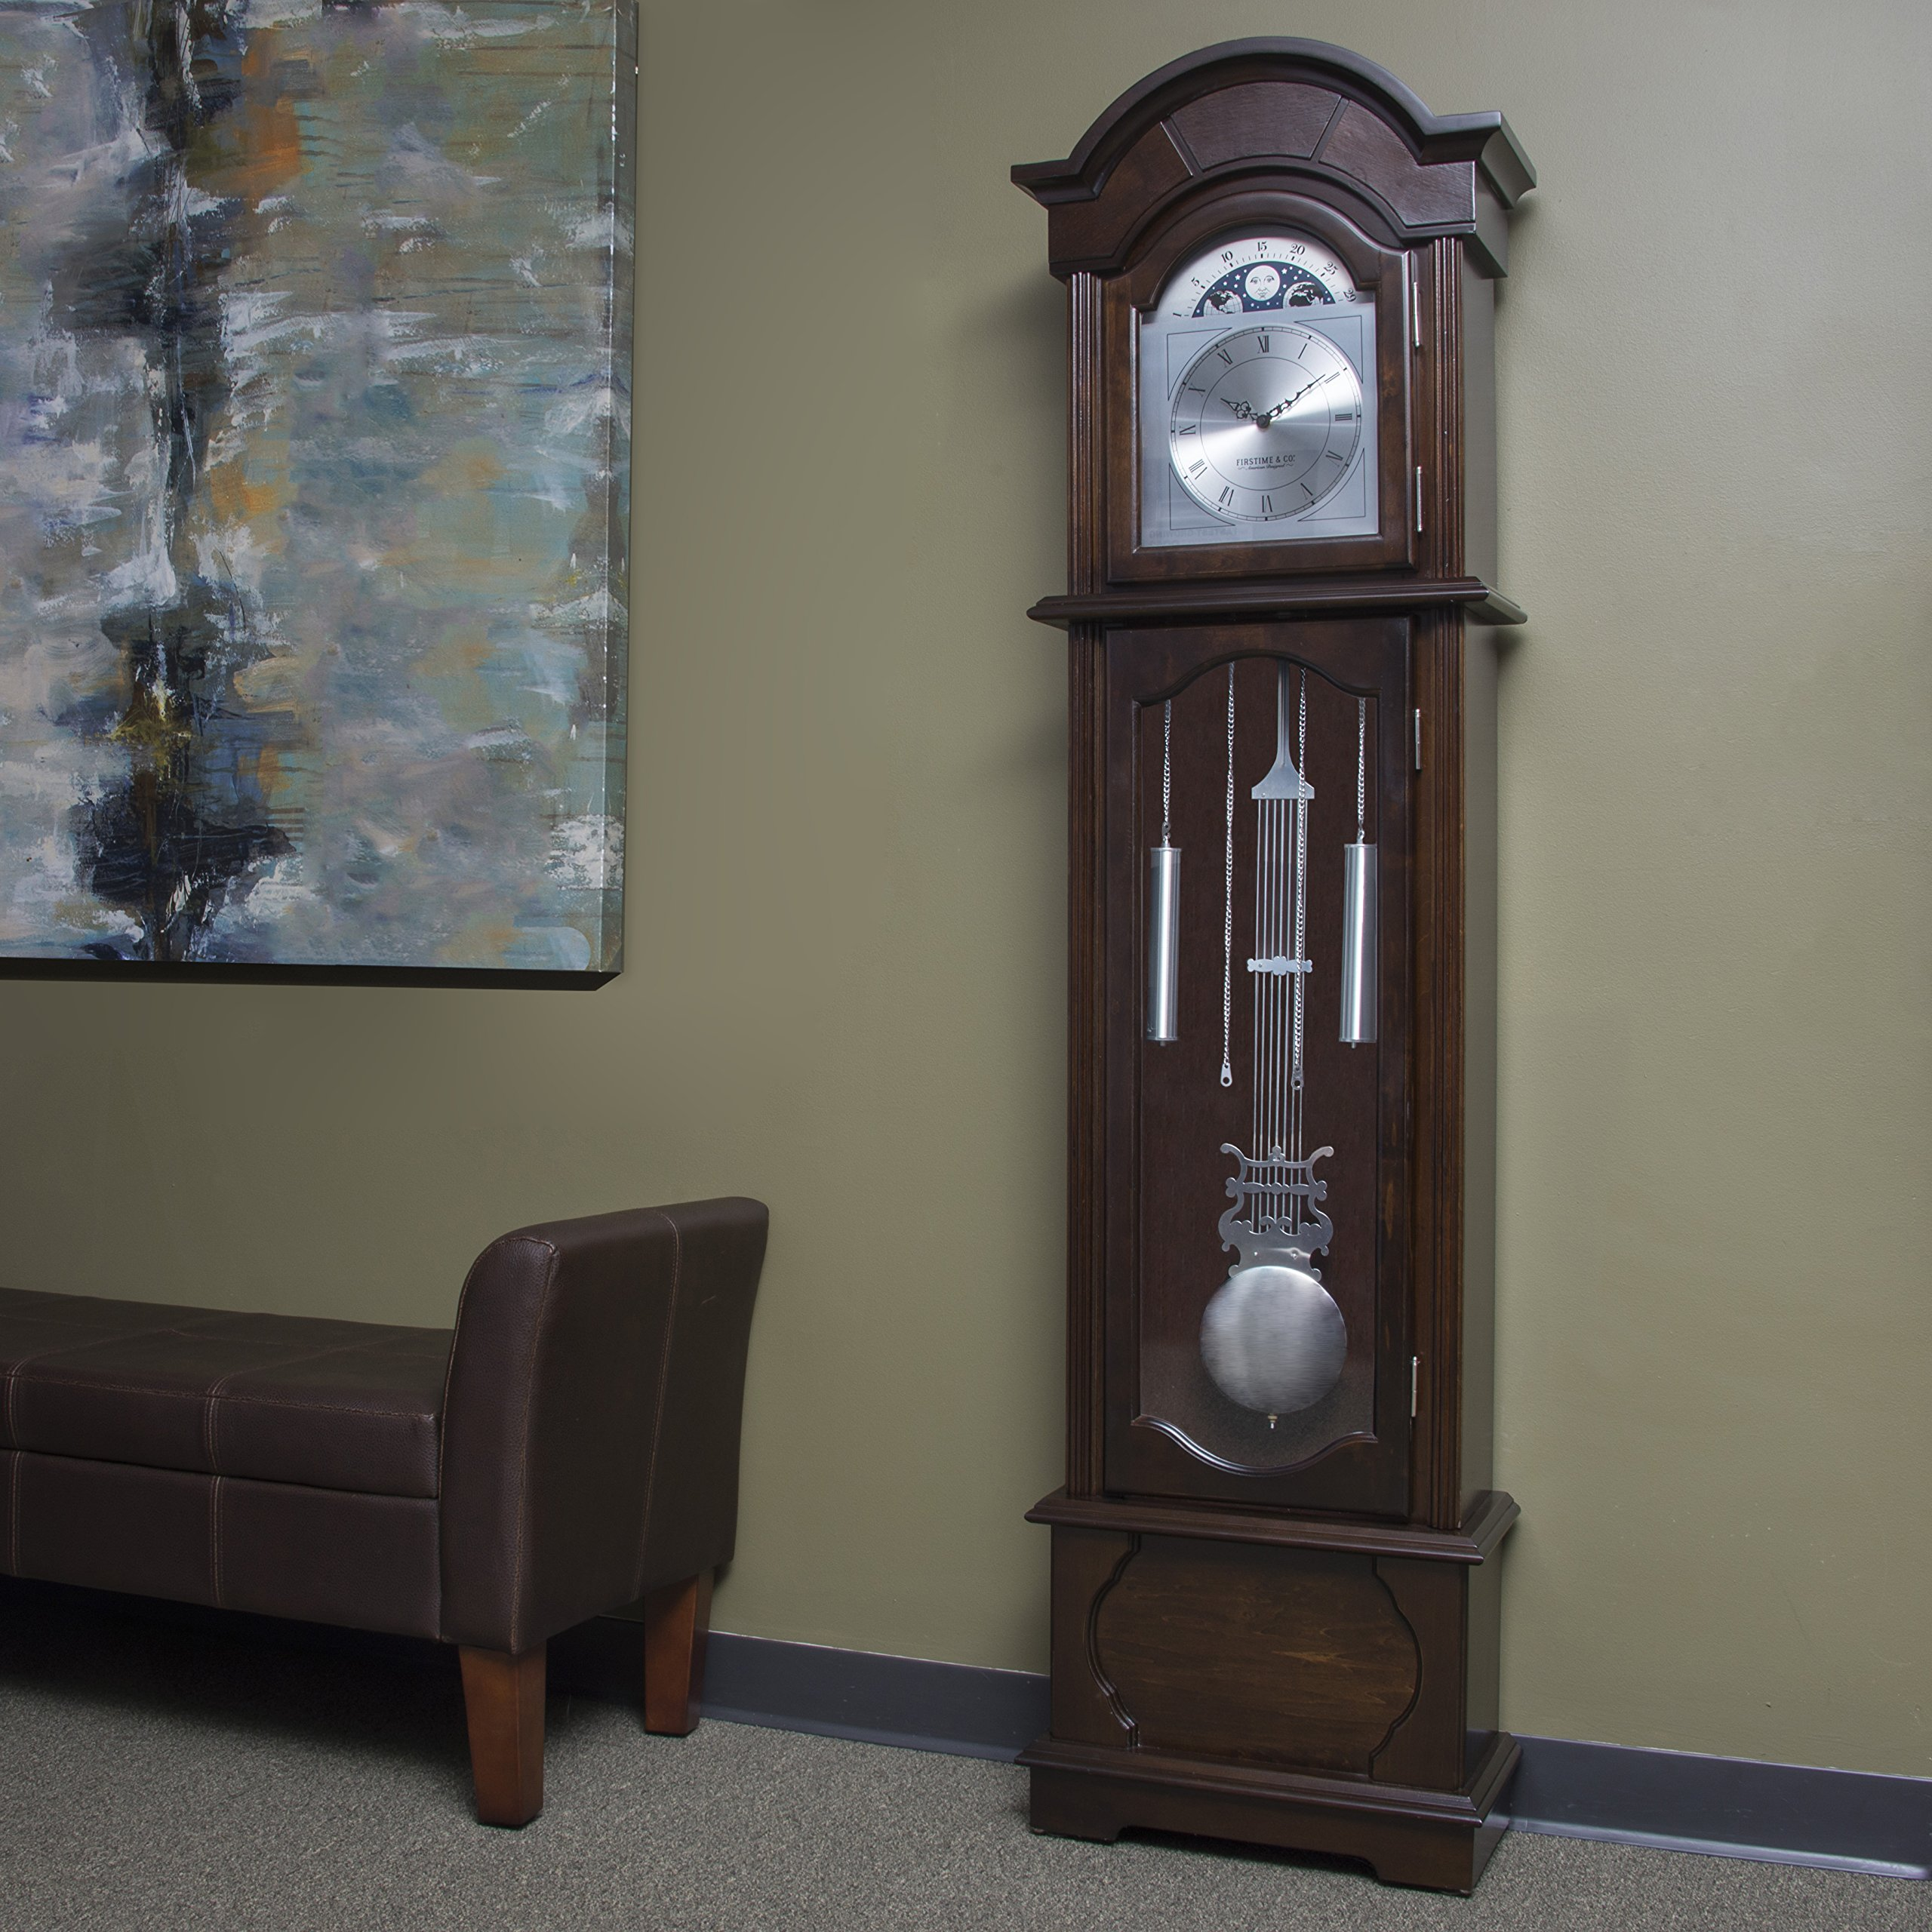 FirsTime & Co. Espresso Grandfather Clock, 72'' H x 19'' W x 9'' D, by FirsTime & Co.